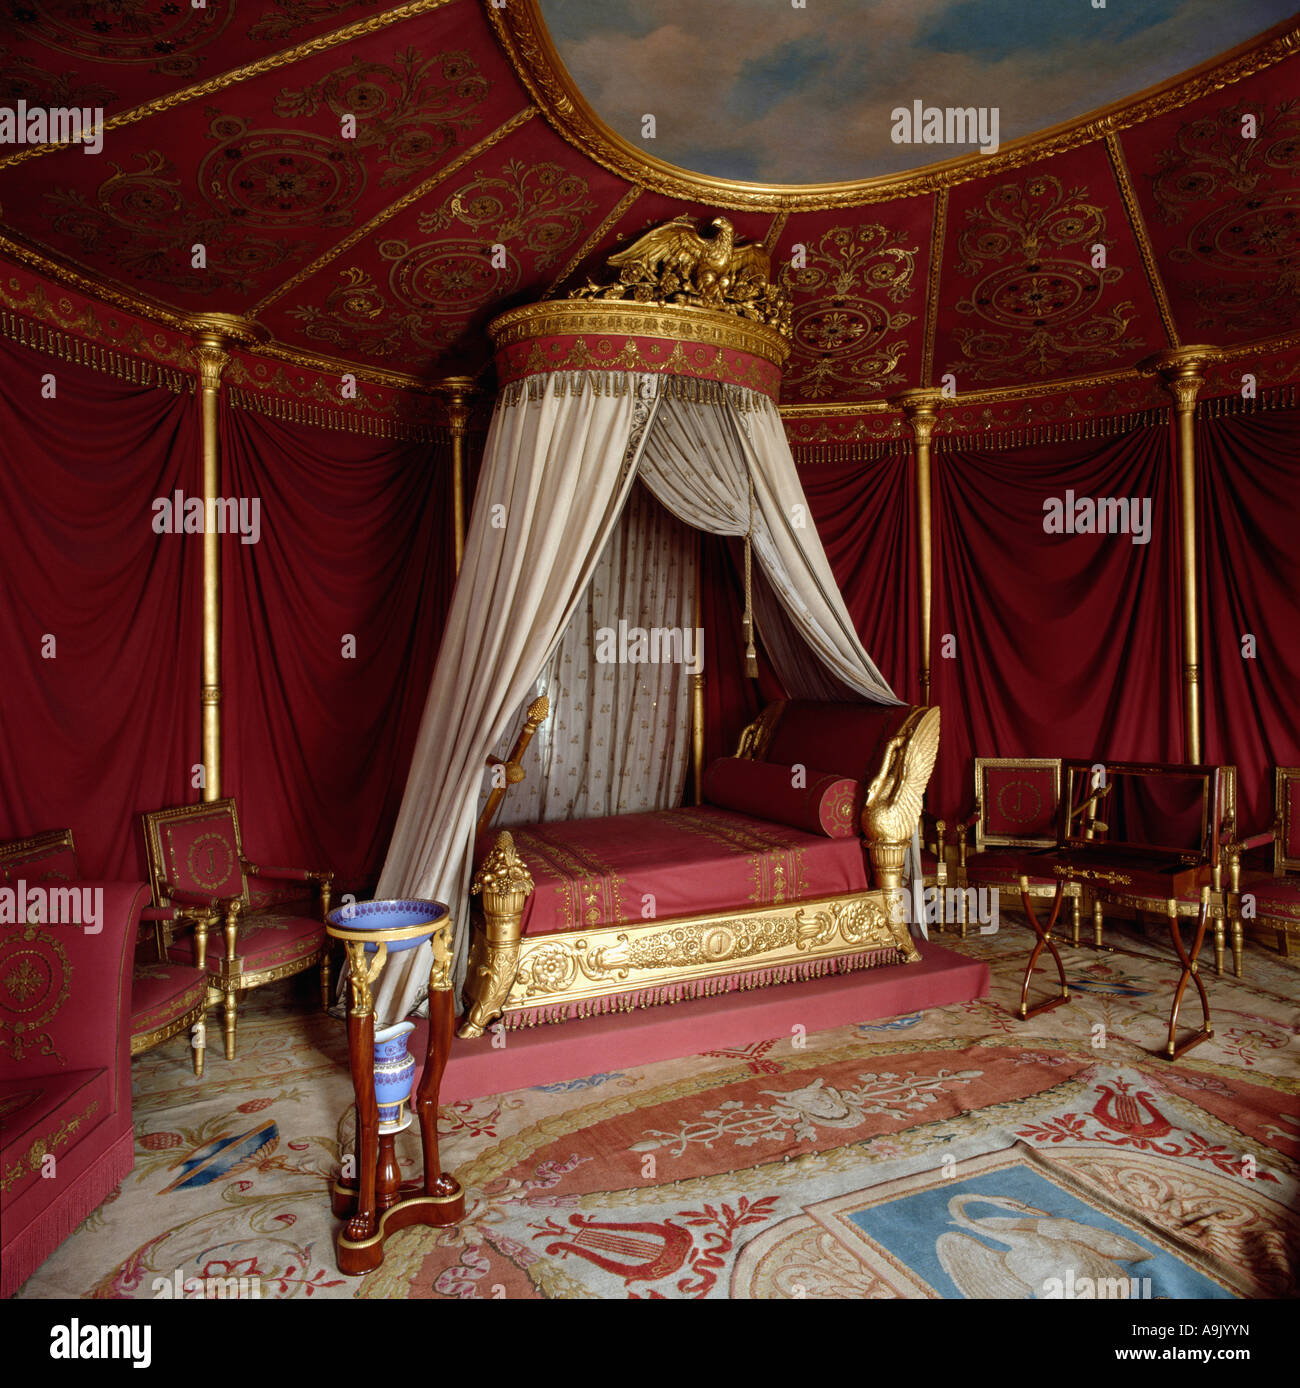 Bedroom ceiling drapes - Ornate Gold Coronet With Cream Drapes On Baroque Gold Bed In Eighties Bedroom With Ornamental Ceiling